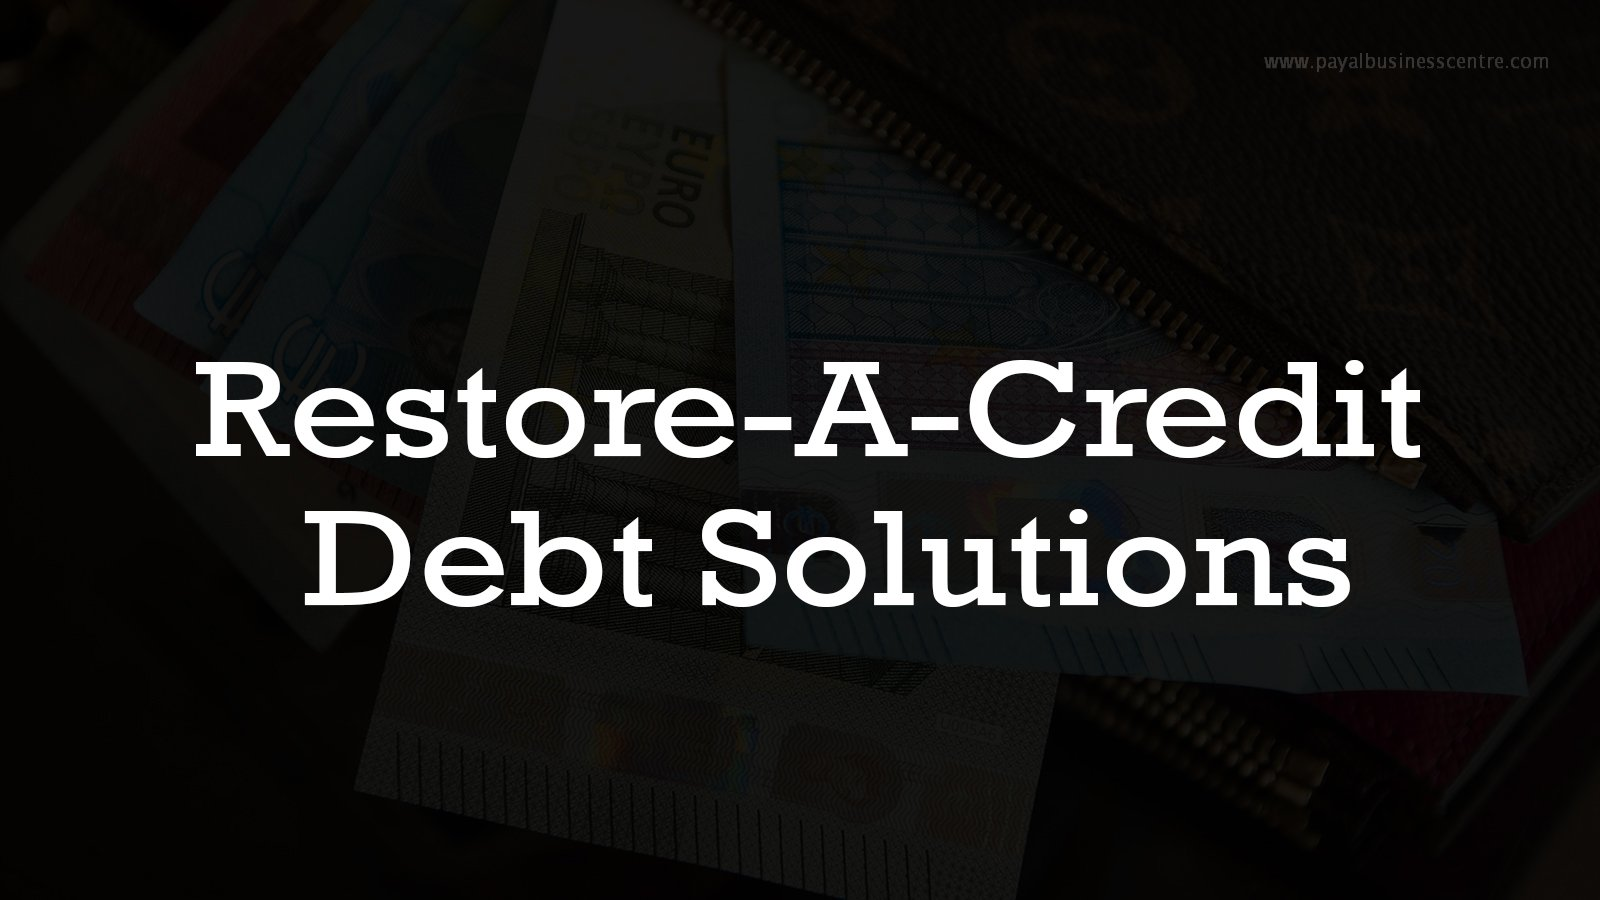 Restore-A-Credit Debt Solutions